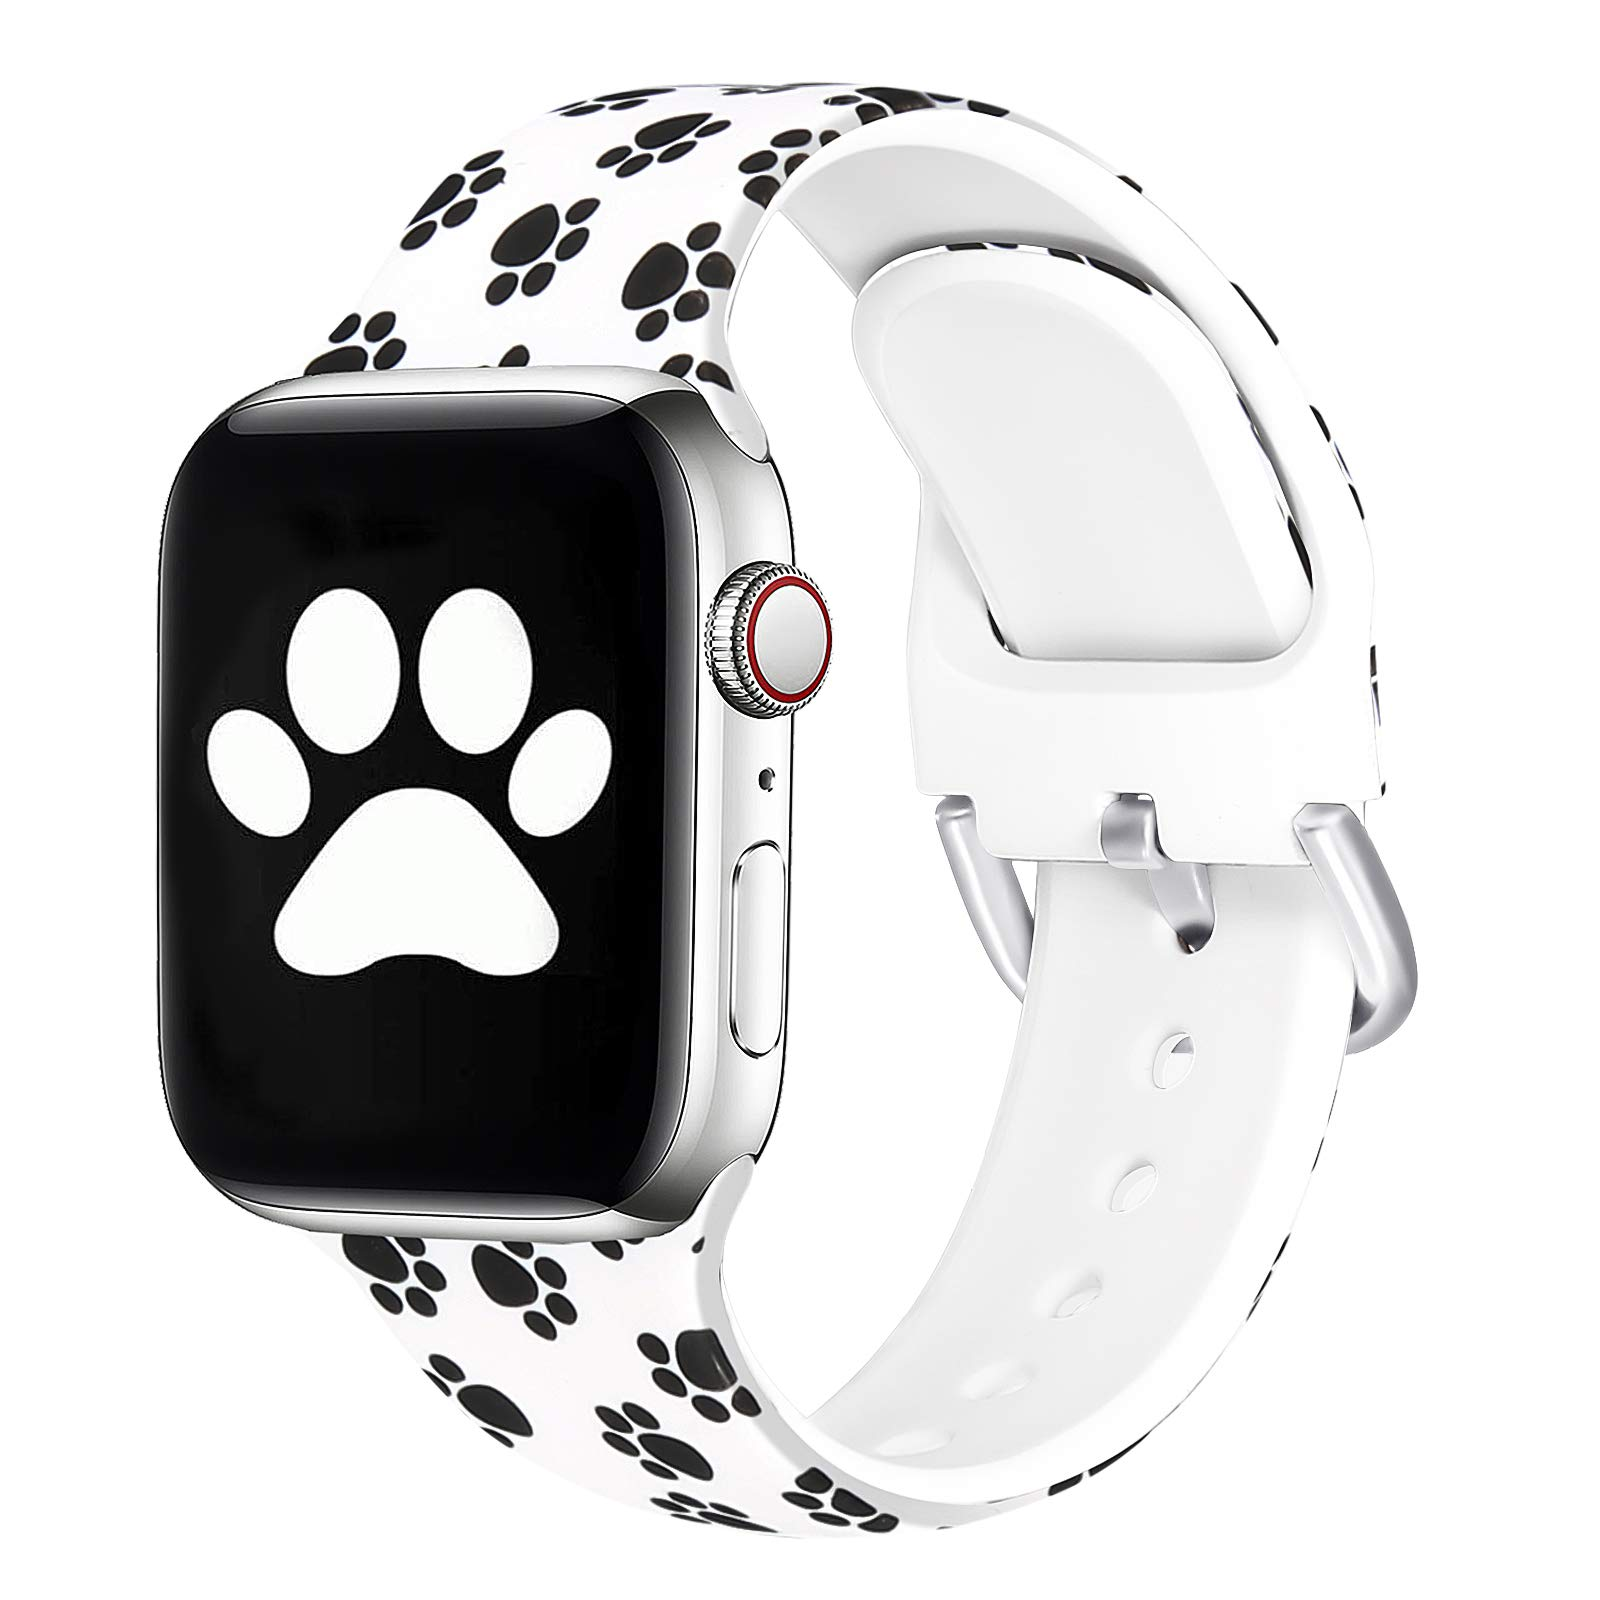 SKYLET Bands Compatible with Apple Watch 44mm 42mm 38mm 40mm Women Men, Soft Floral Printed Pattern Straps Replacement Wristbands Compatible with Apple Watch Series 6 5 4 3 2 1 se